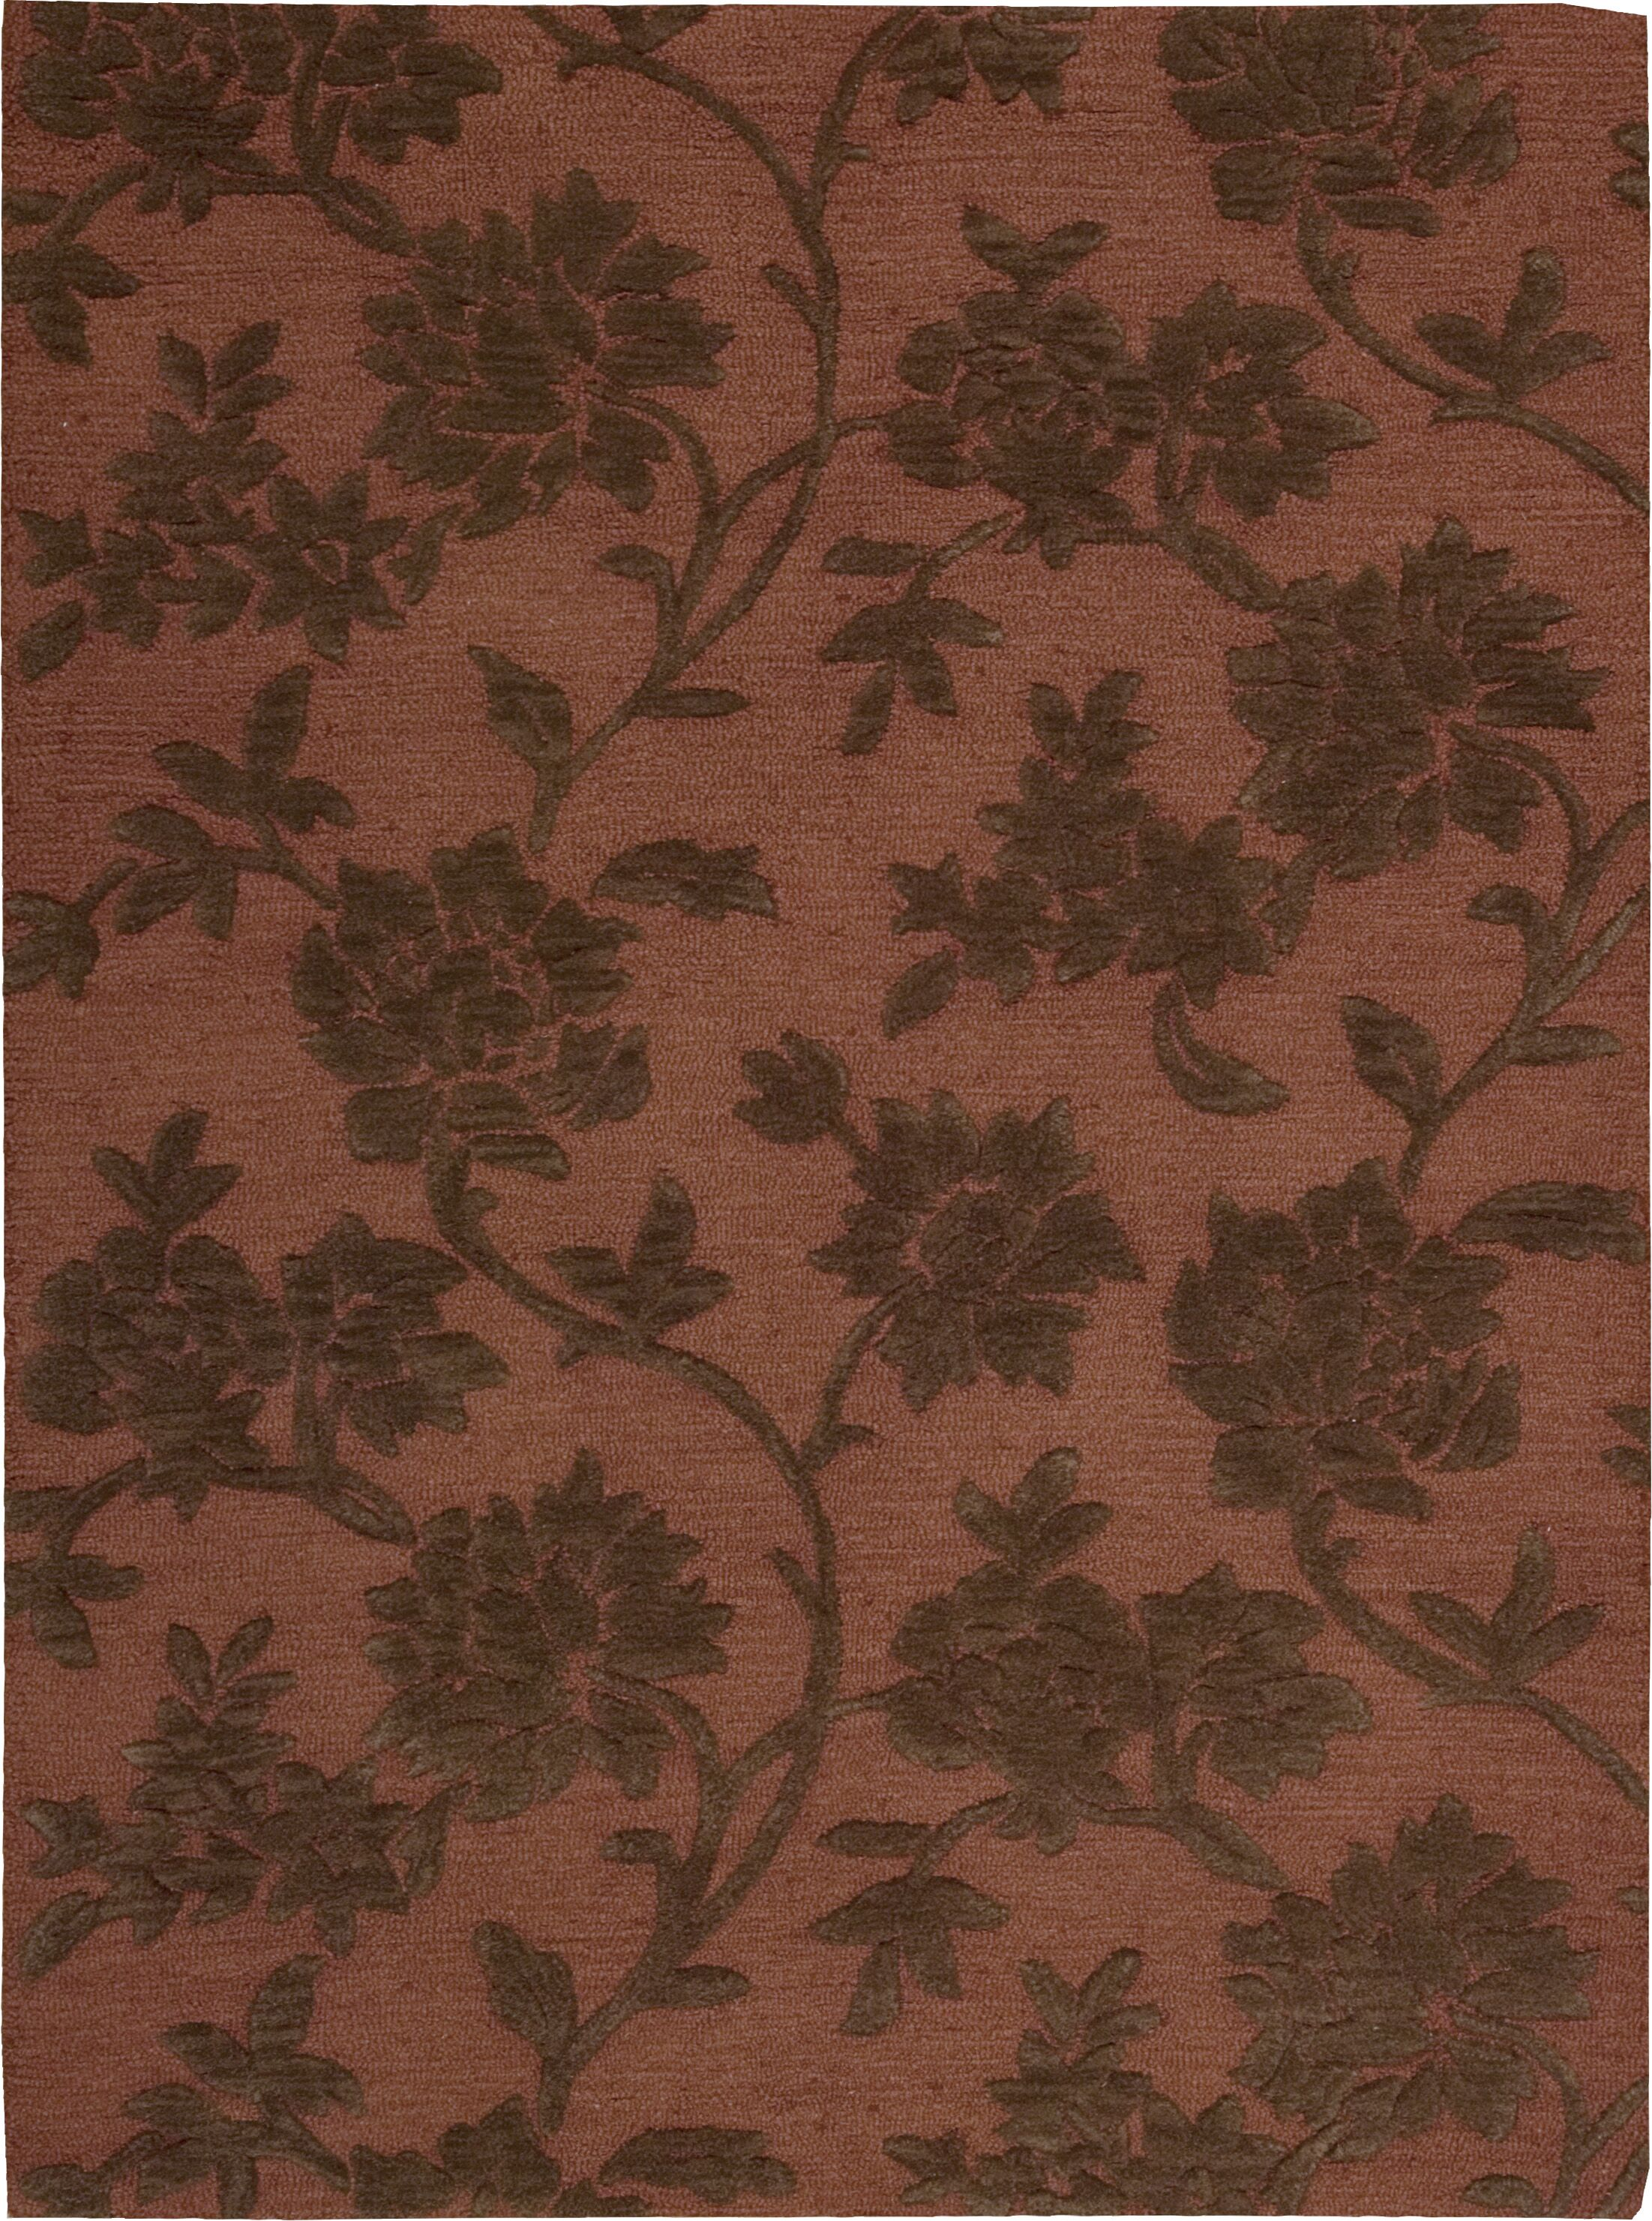 Peterson Hand-Tufted Rust/Brown Area Rug Rug Size: Rectangle 3'6